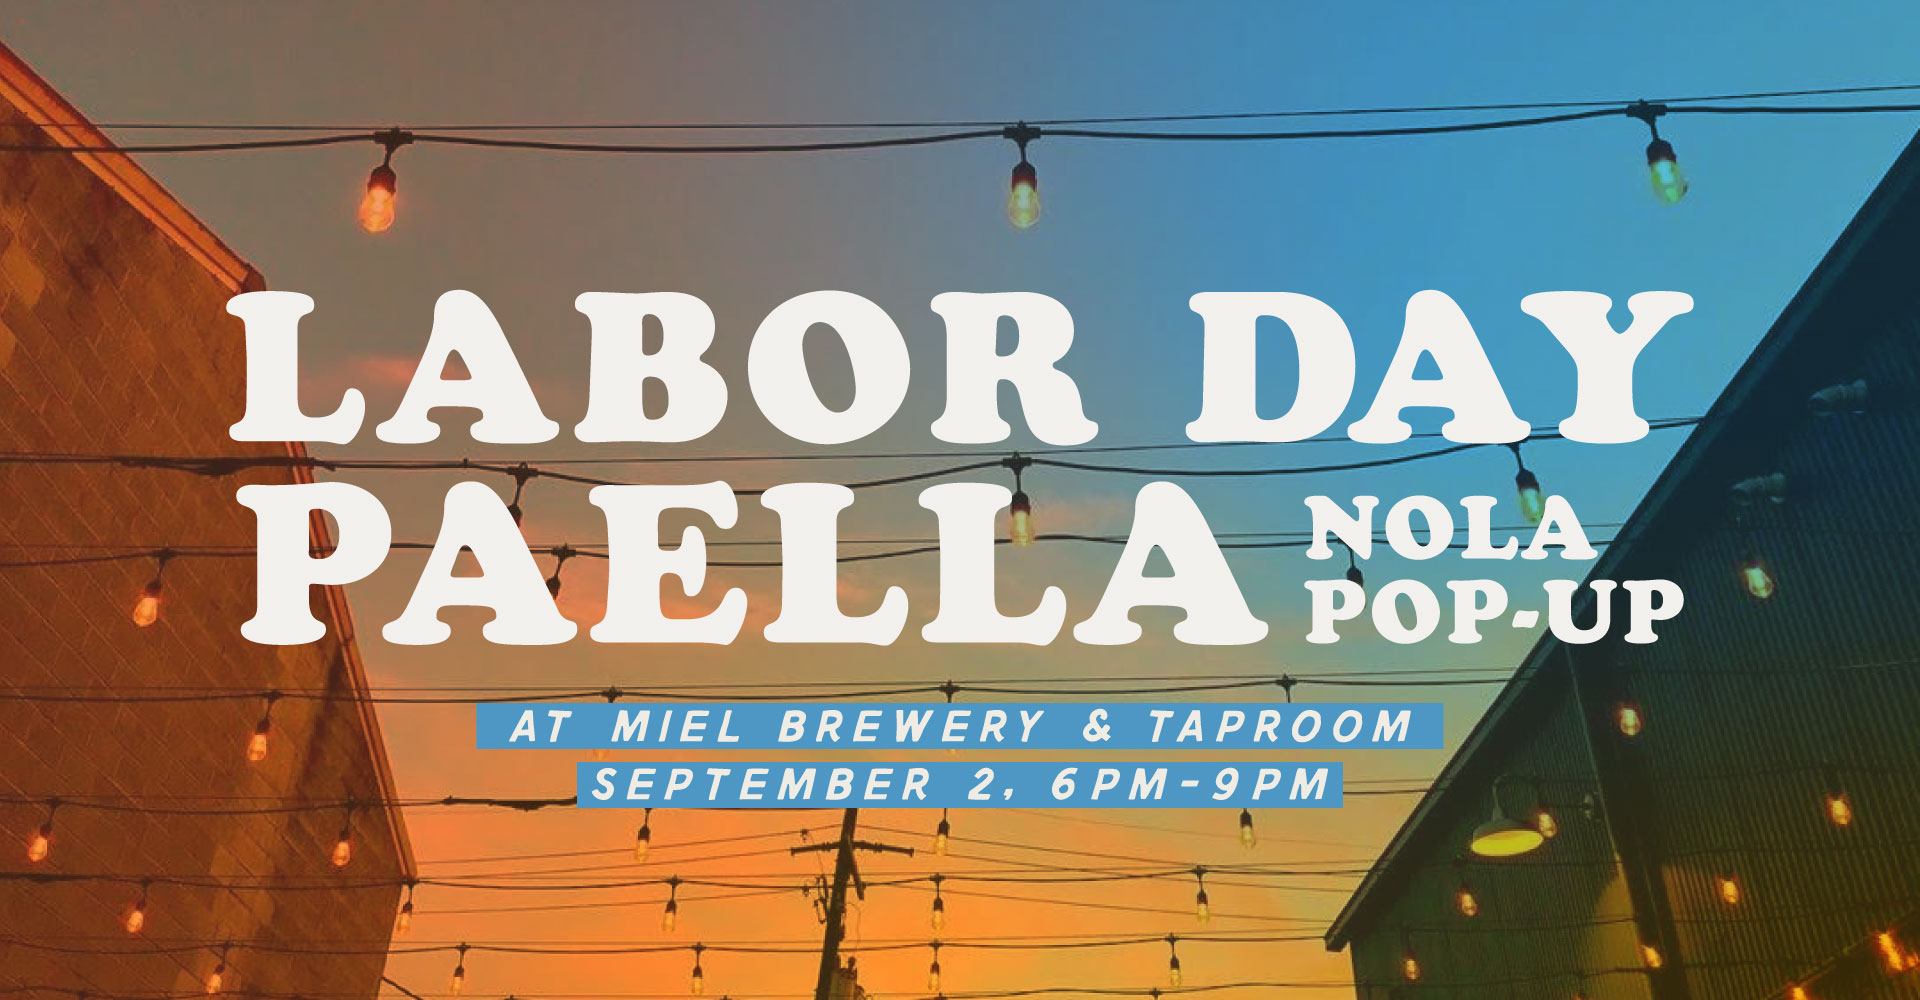 Miel Brewery_New Orleans_Labor Day Paella NOLA pop-up